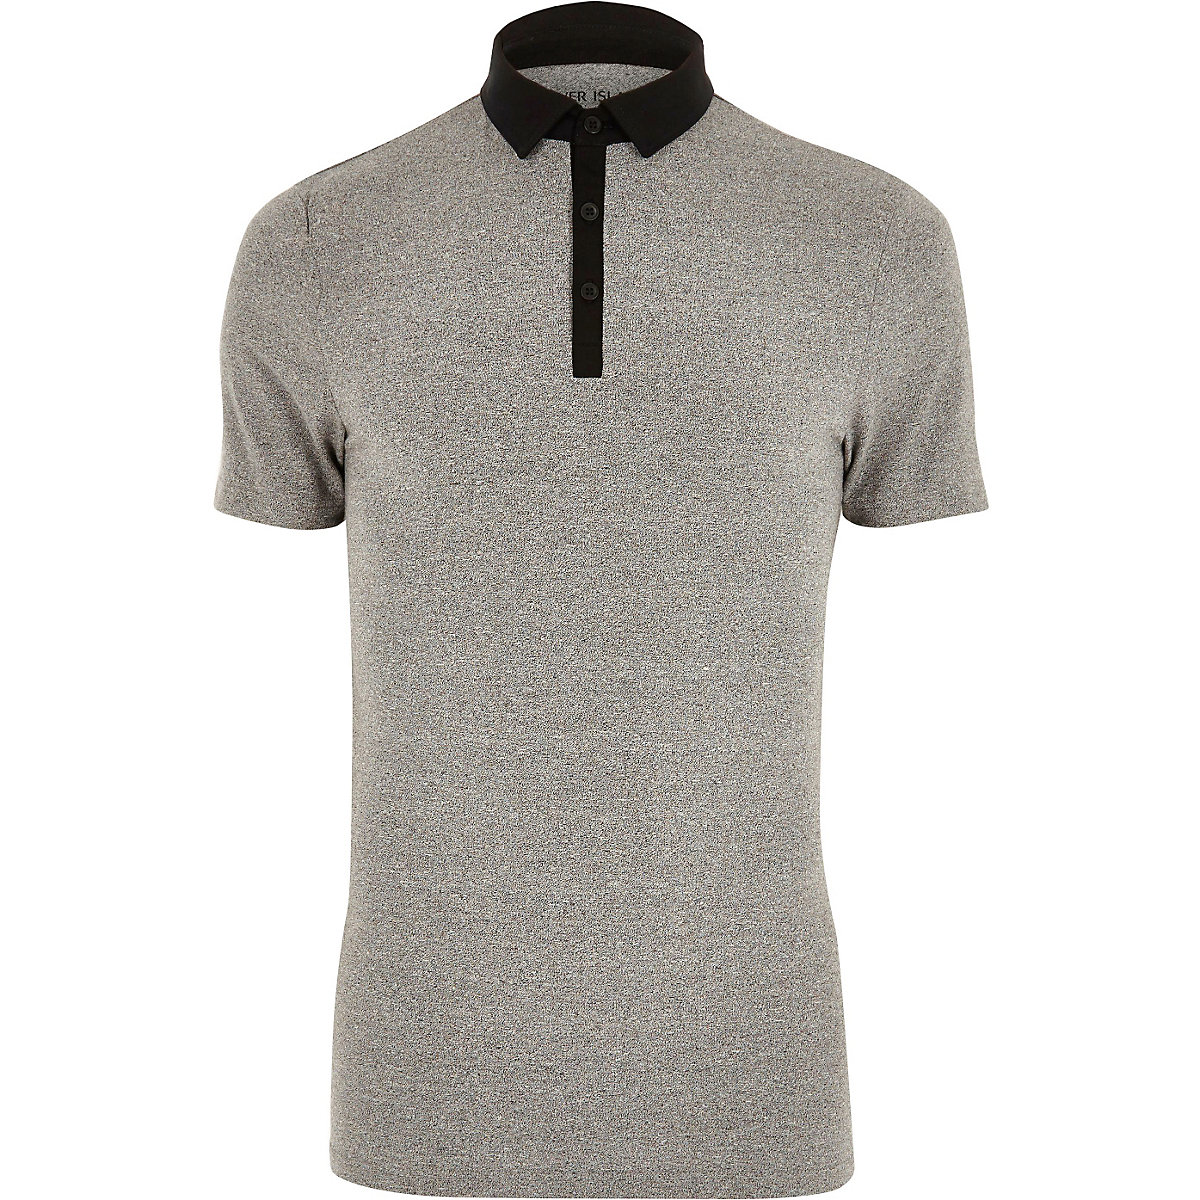 Grey contrast muscle fit polo shirt